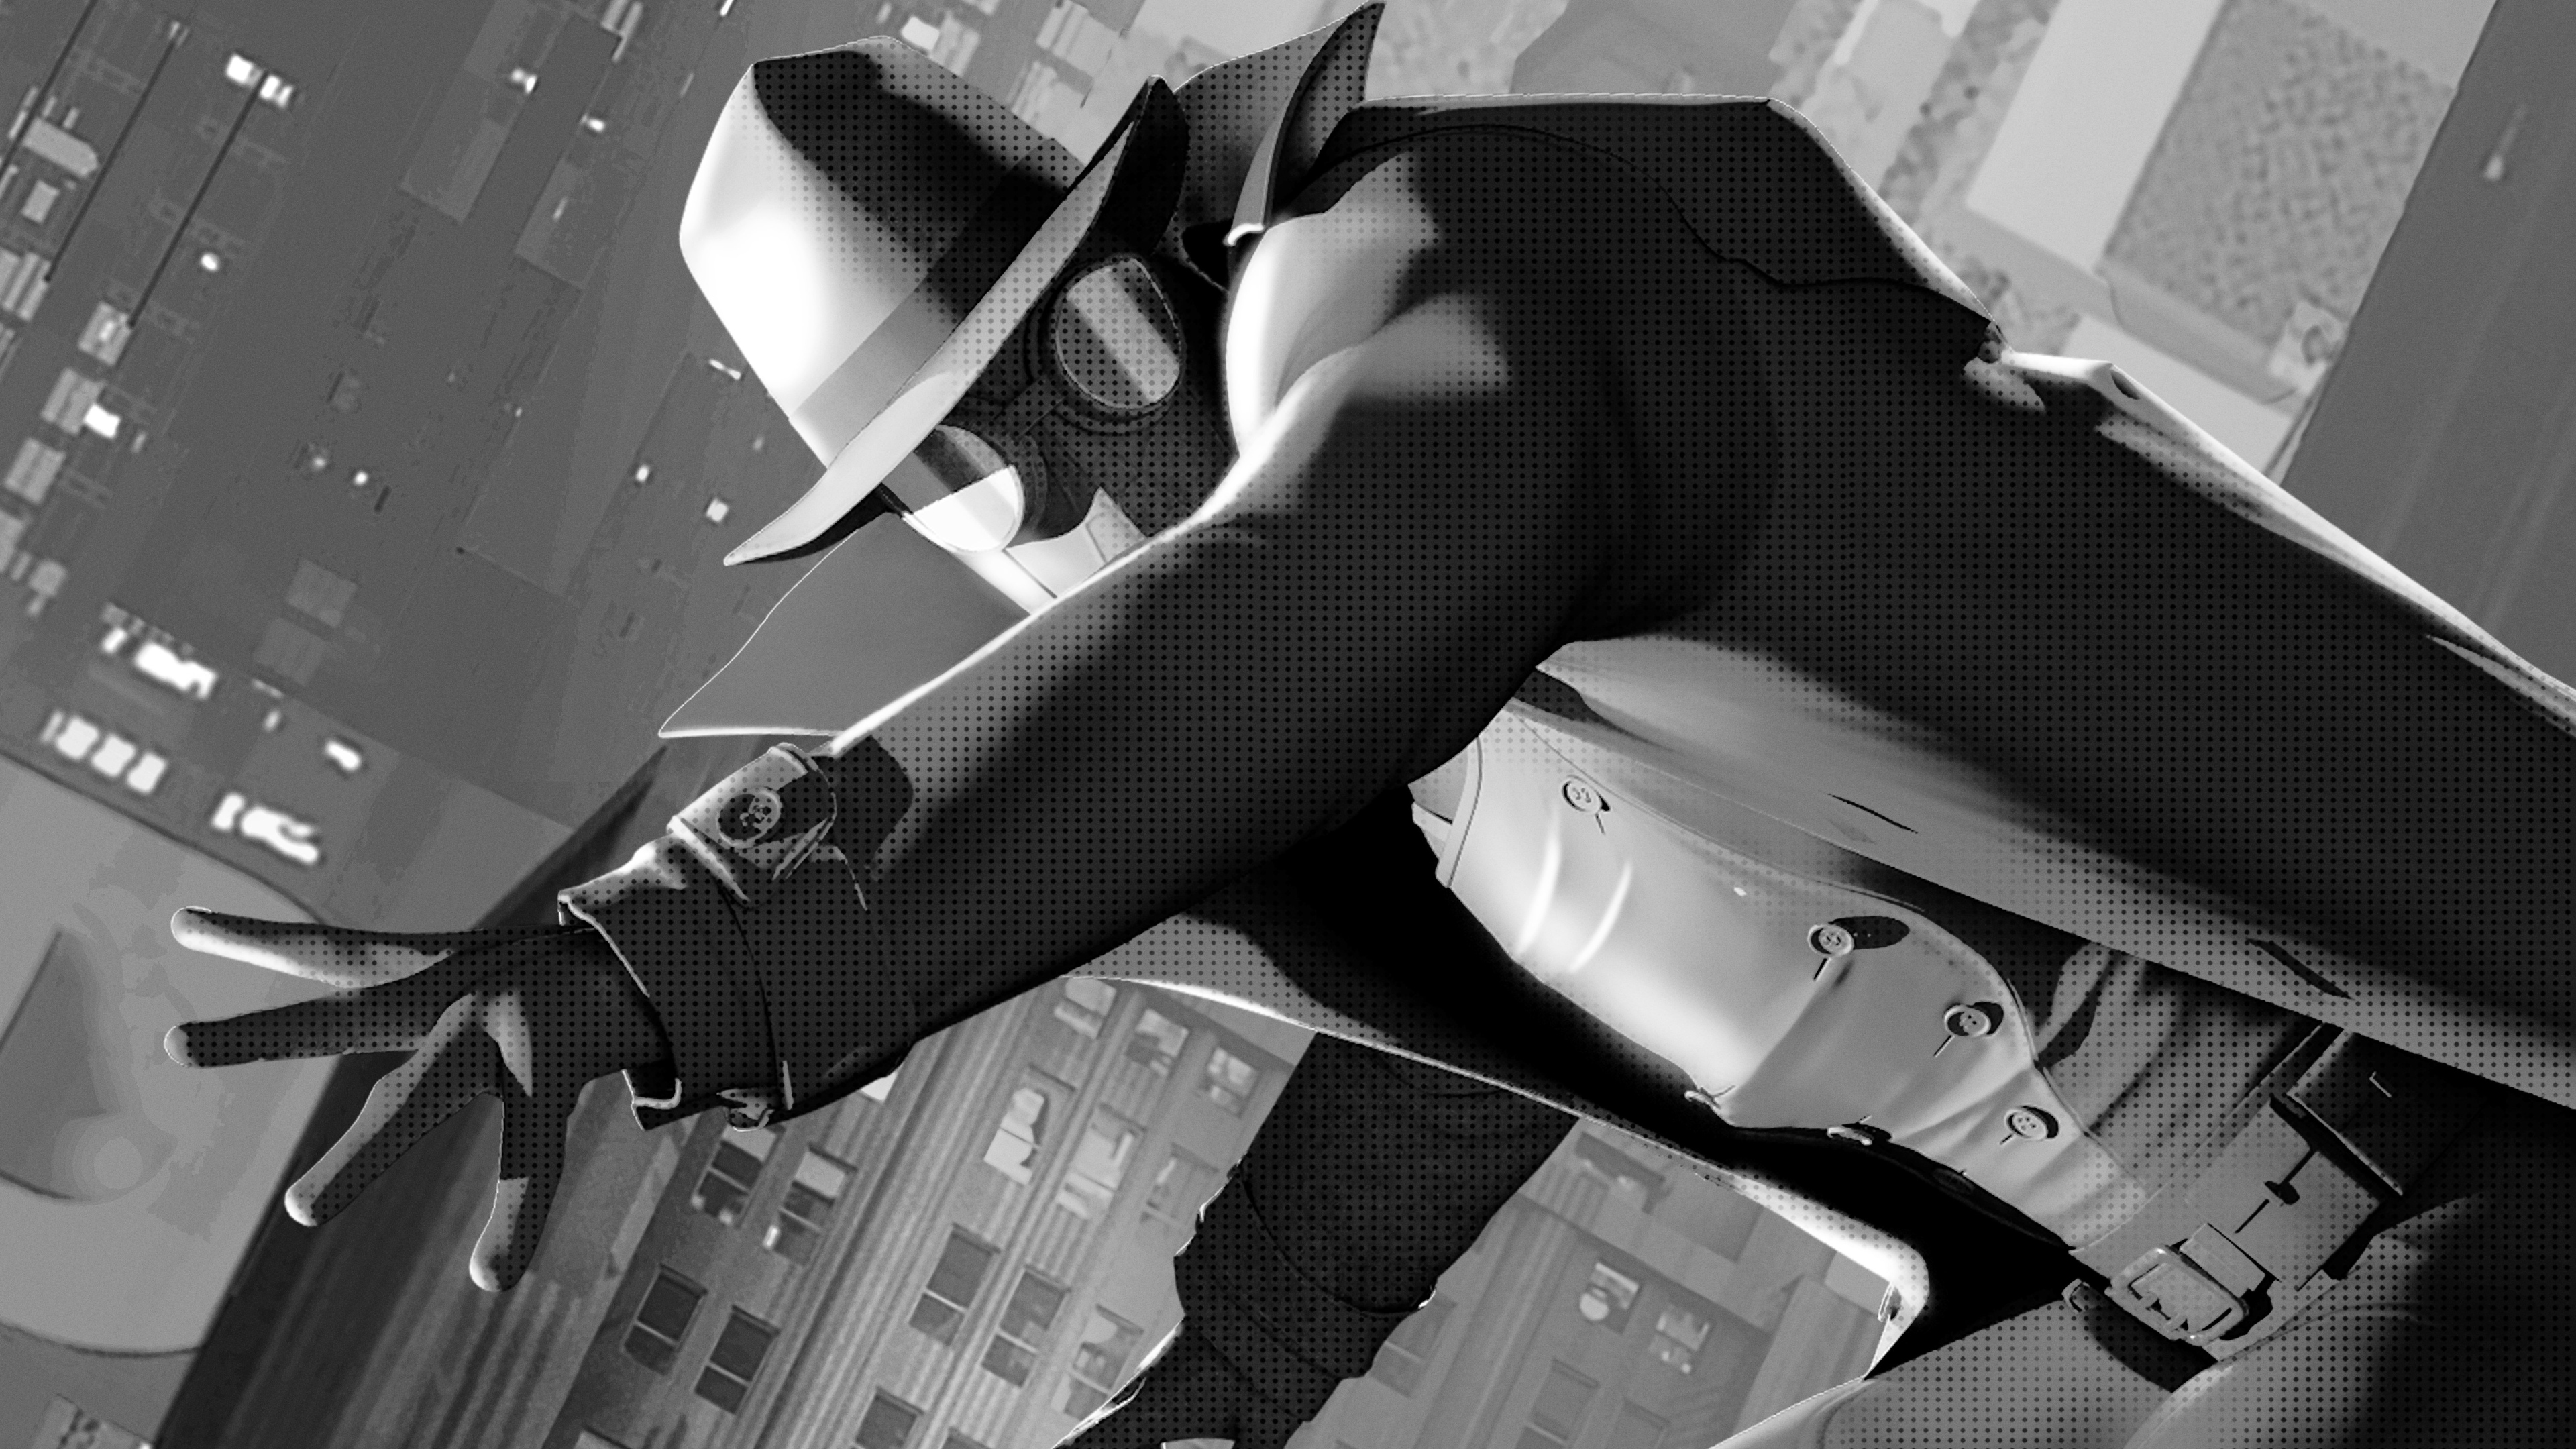 spider man noir 4k 1543105189 - Spider Man Noir 4k - spiderman wallpapers, spiderman into the spider verse wallpapers, movies wallpapers, hd-wallpapers, animated movies wallpapers, 5k wallpapers, 4k-wallpapers, 2018-movies-wallpapers